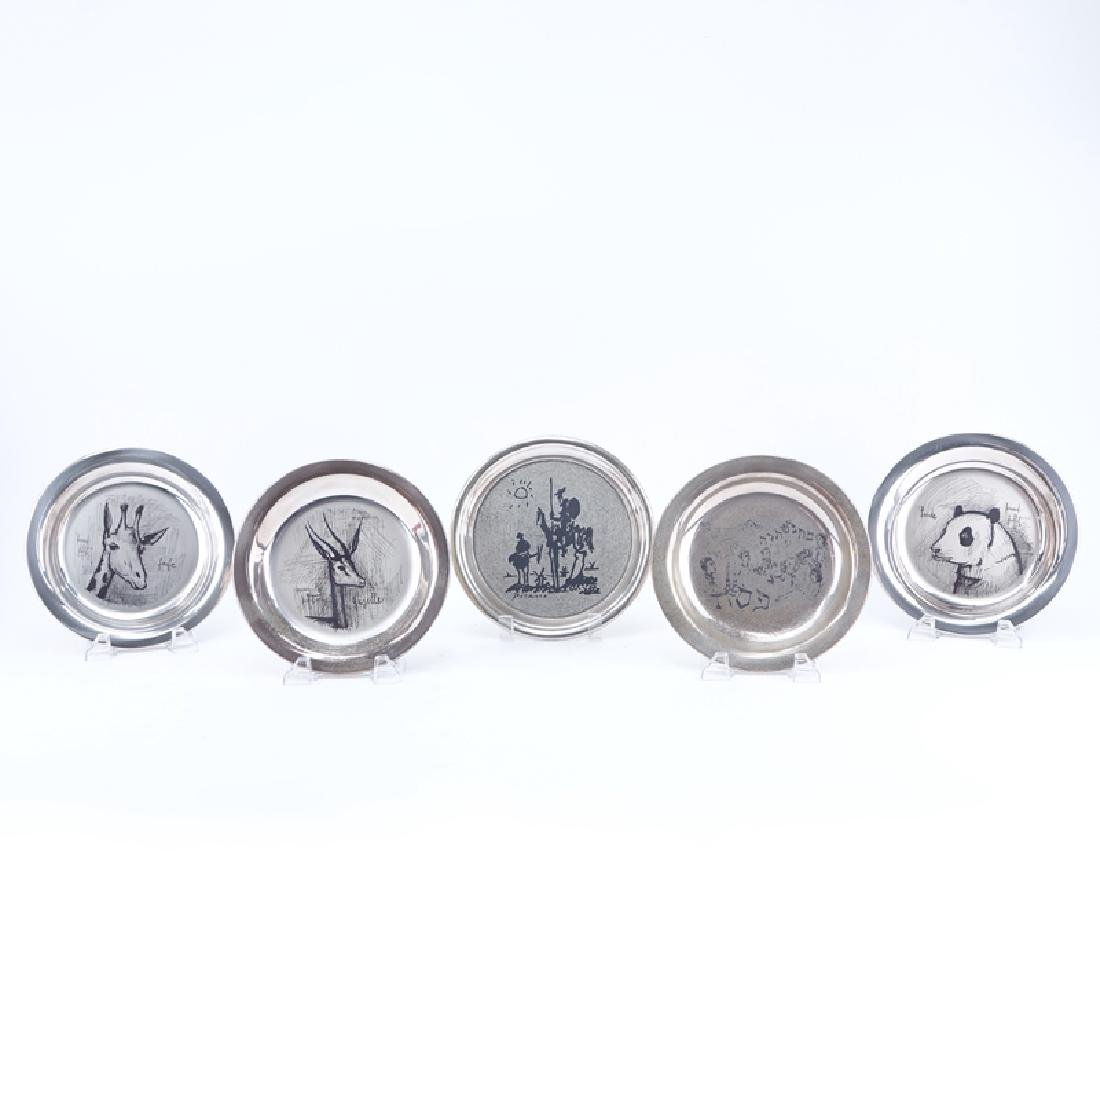 Collection of Five (5) Limited Edition Sterling Silver